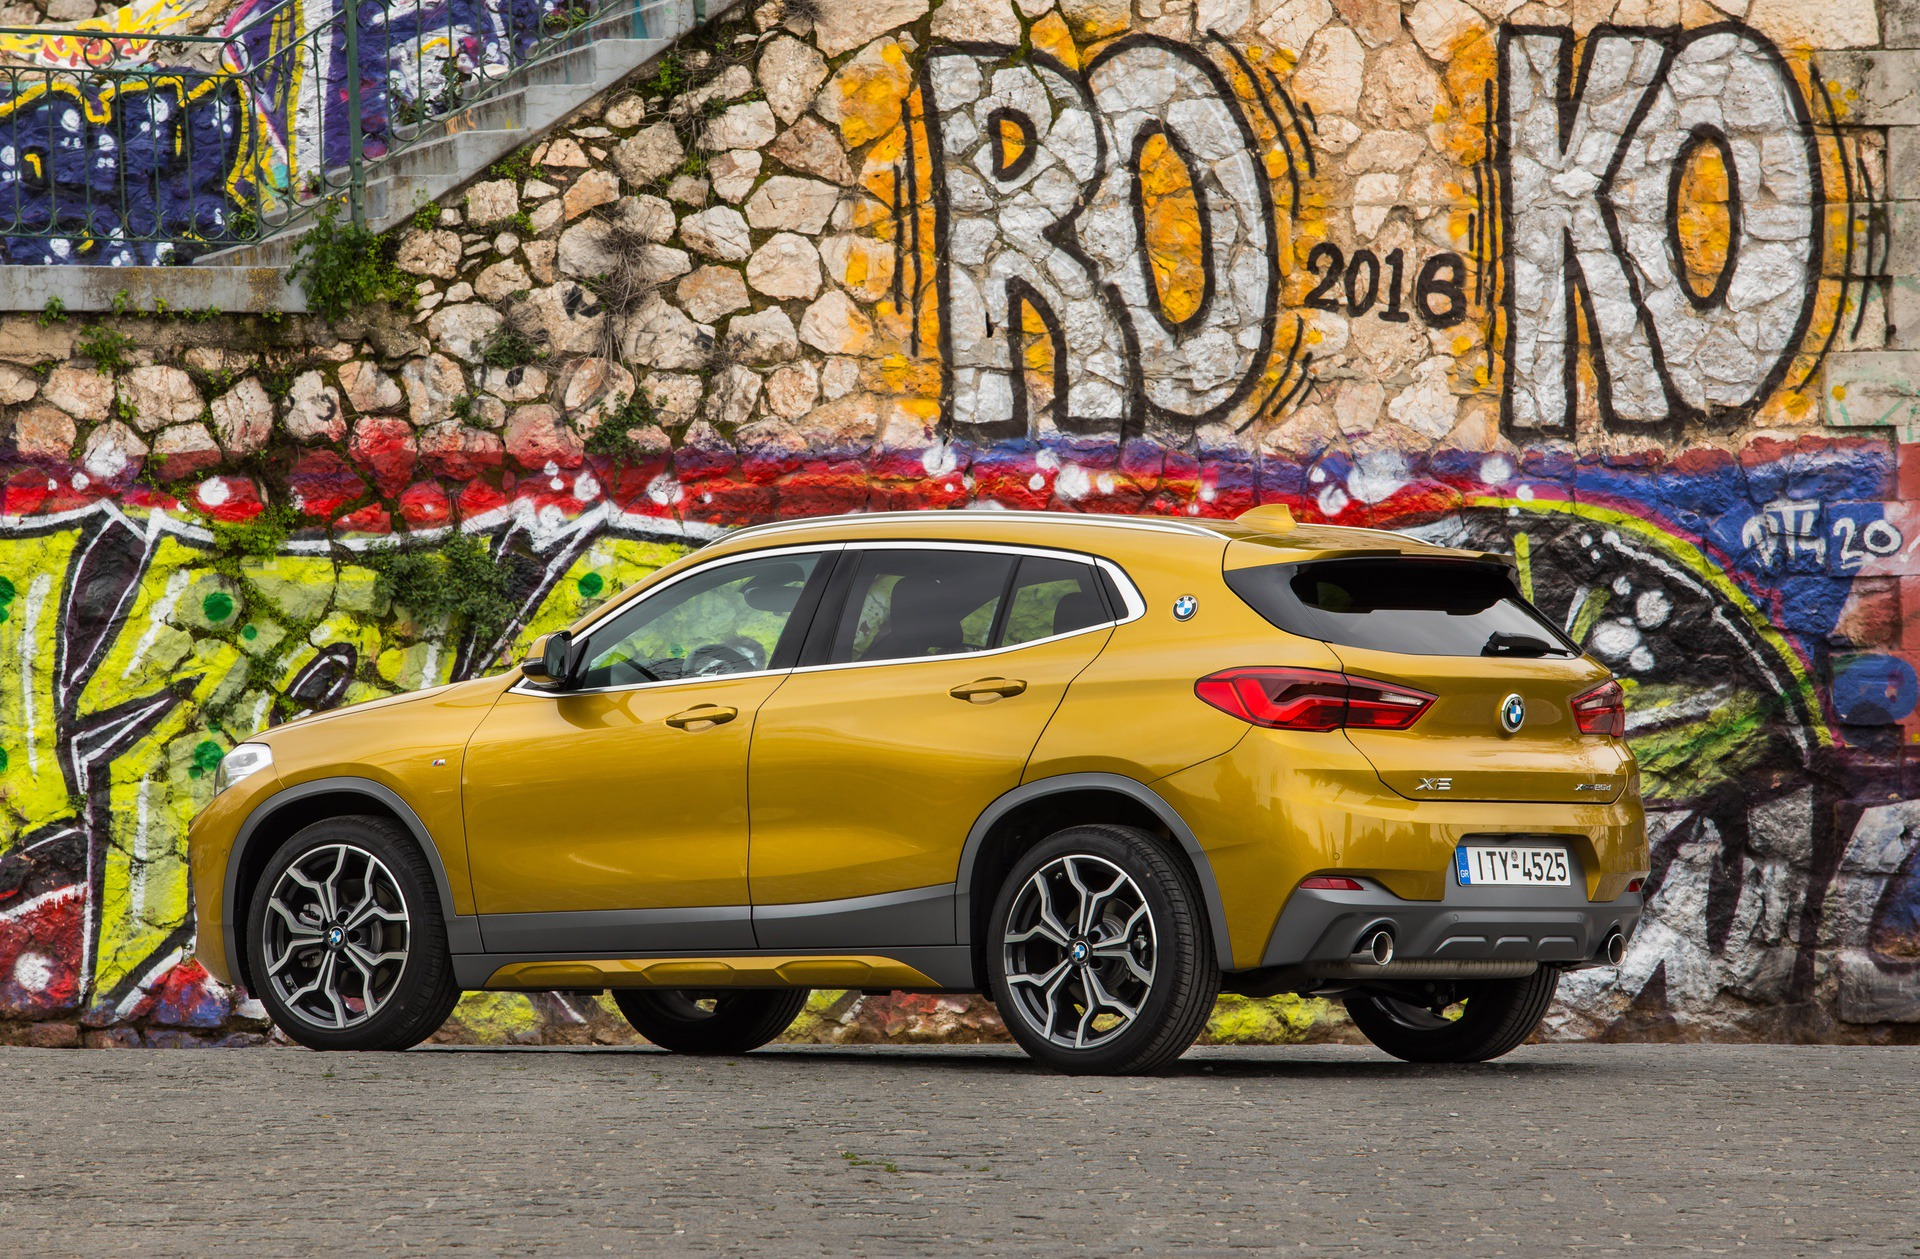 BMW_X2_Greek_presskit_0089